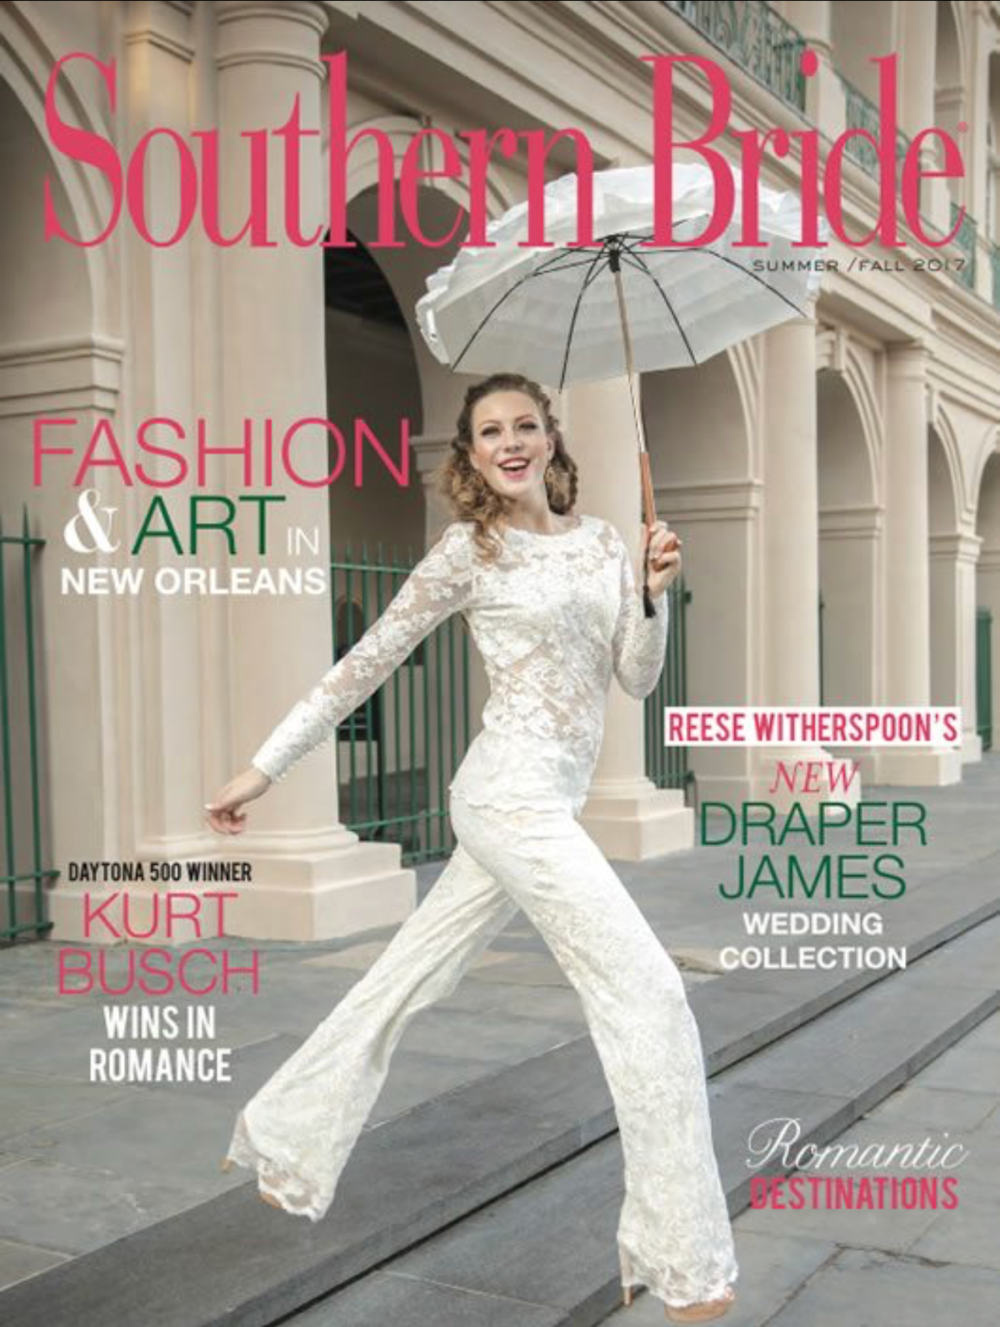 SOUTHERN BRIDE COVER 2017